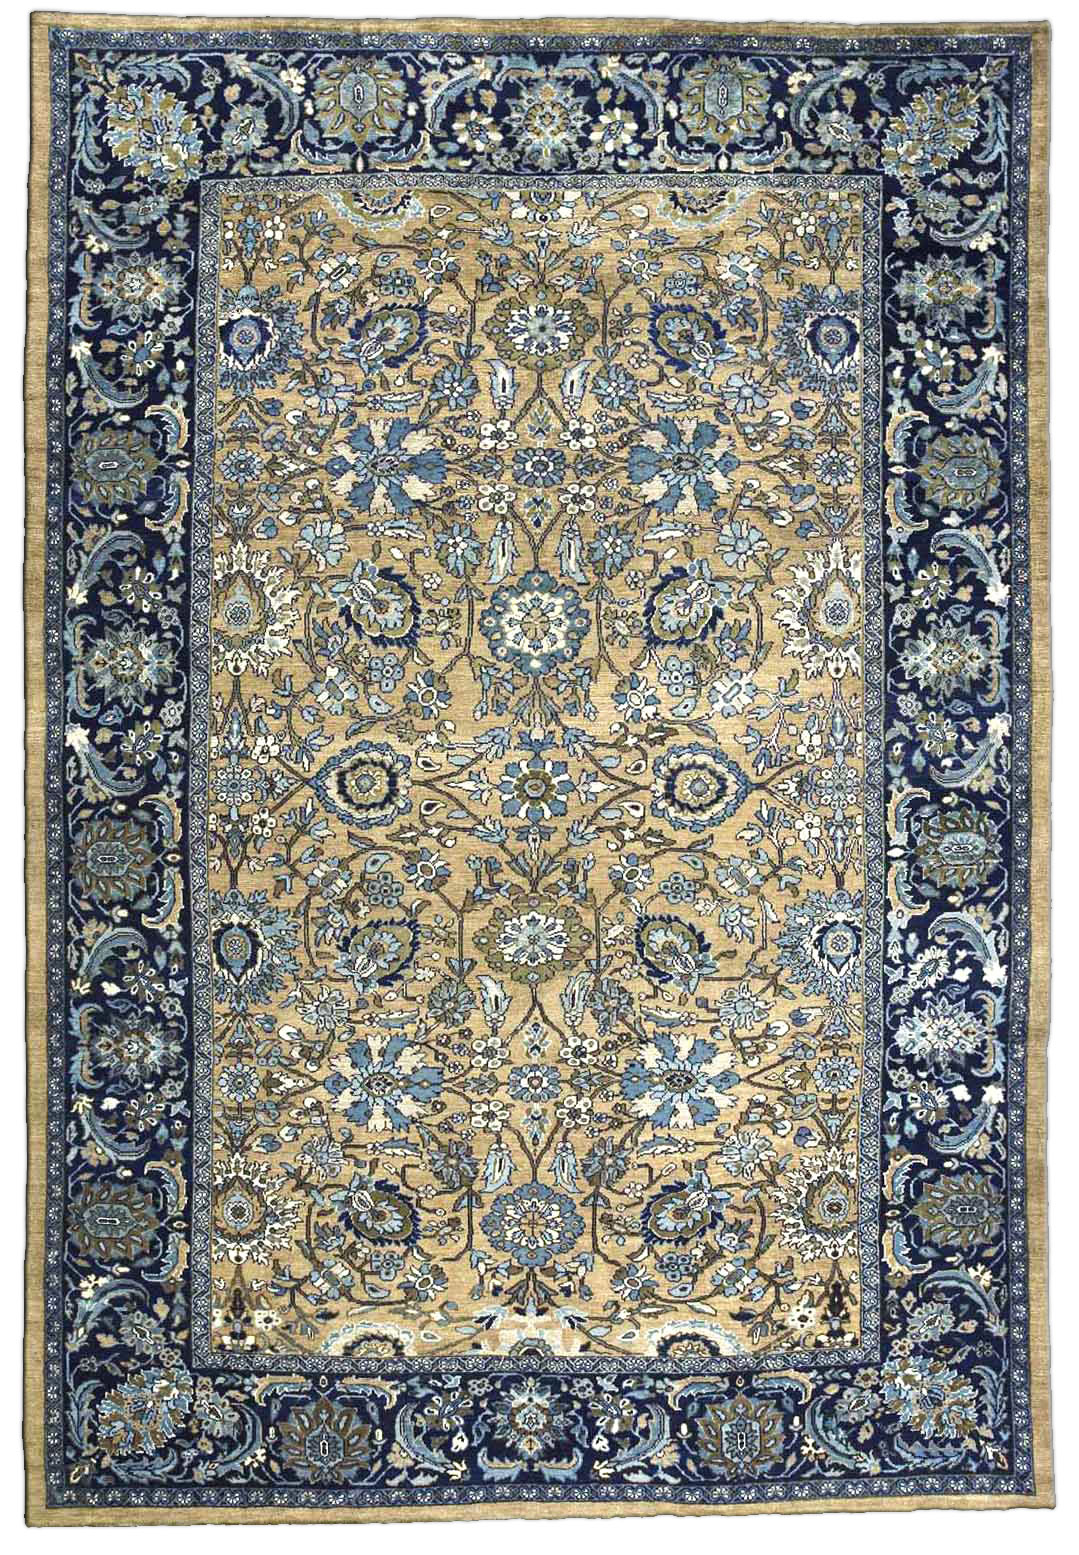 Persian Sultanabad Carpet Antique Persian Rug Antique